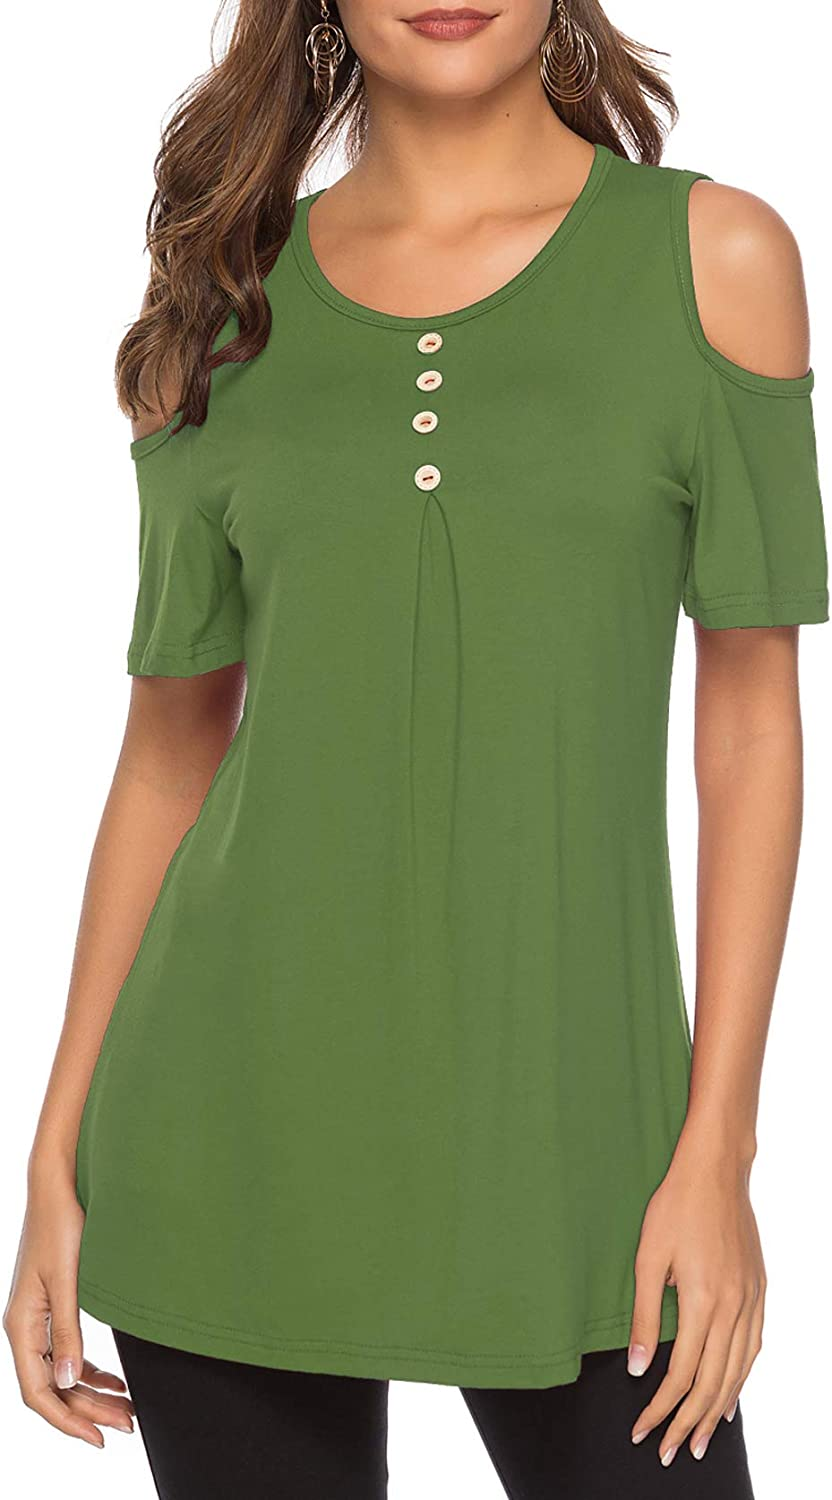 KISSMODA Women's Summer Cold Shoulder Tunic Top Swing TShirt Loose with Buttons Green XXLarge